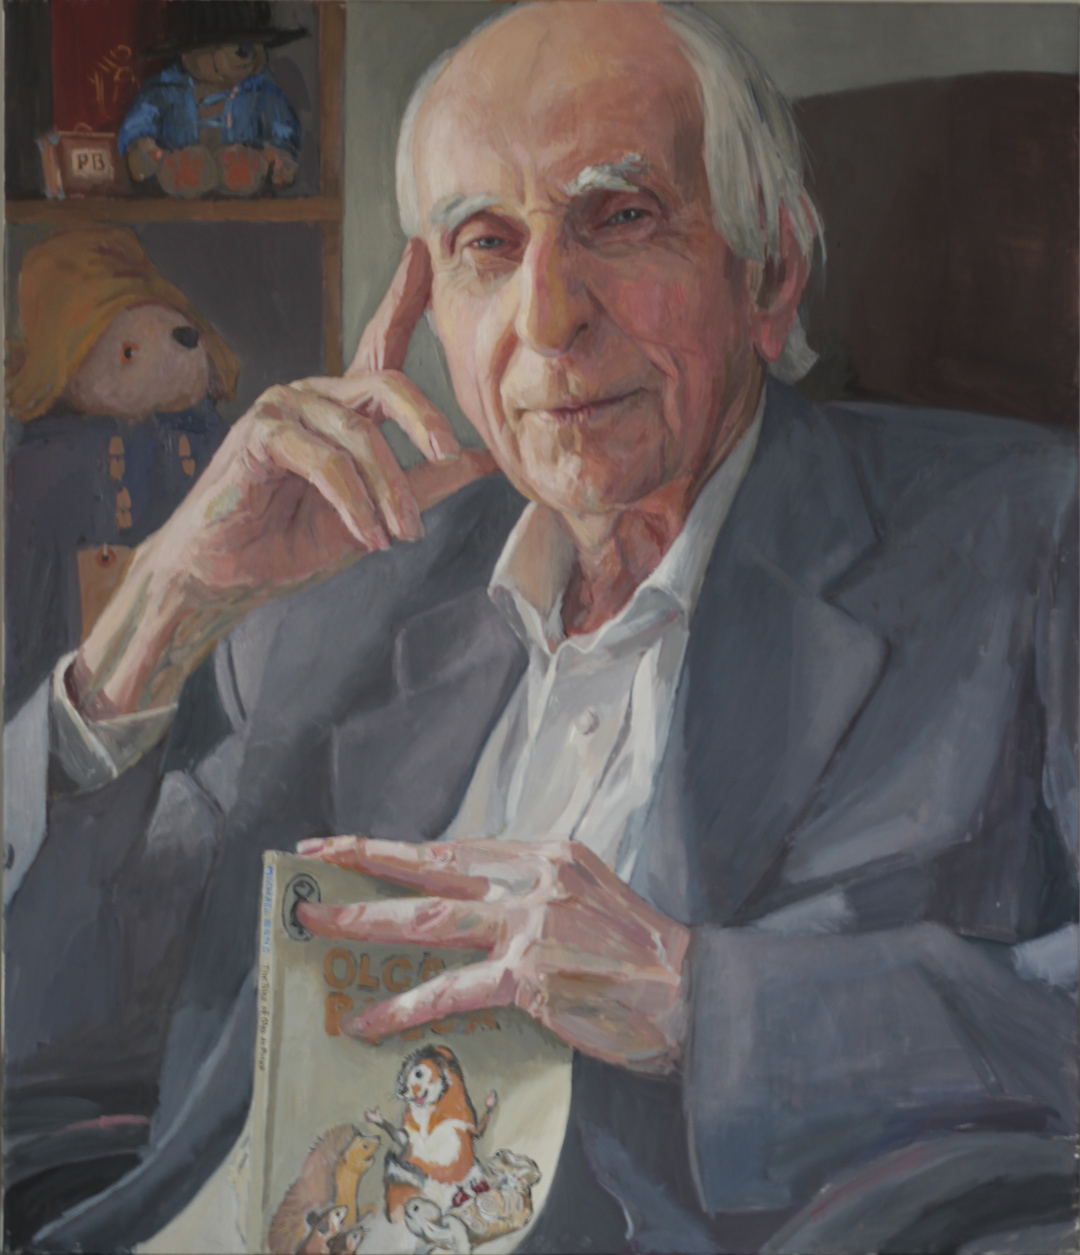 Hero Johnson. Painting of Michael Bond, Royal Society of Portrait Painters 2017.